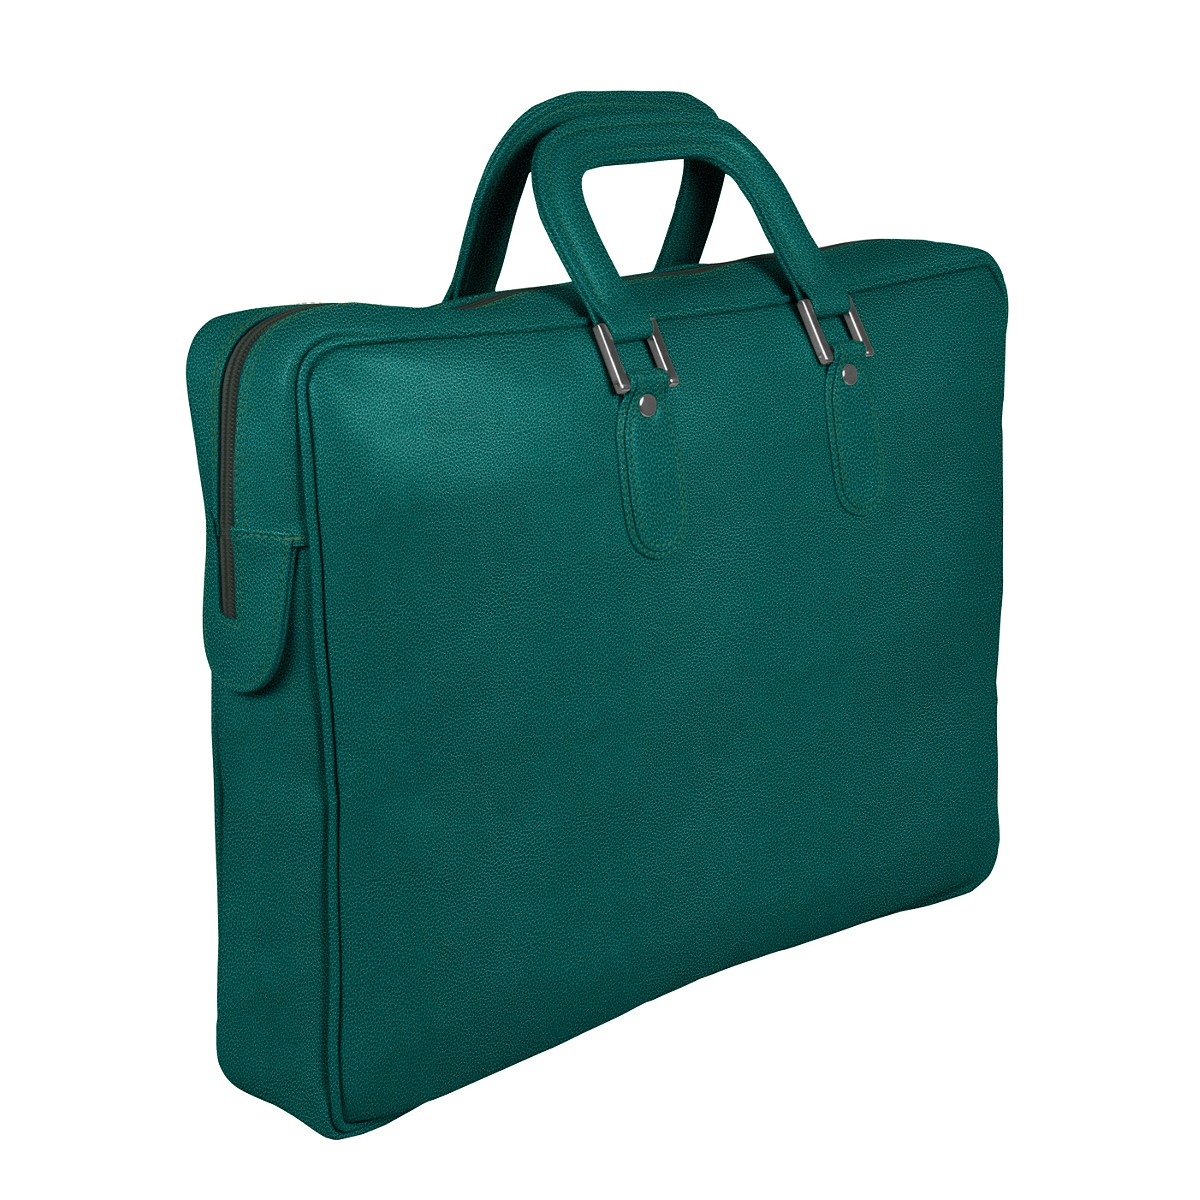 Briefcase with zipper